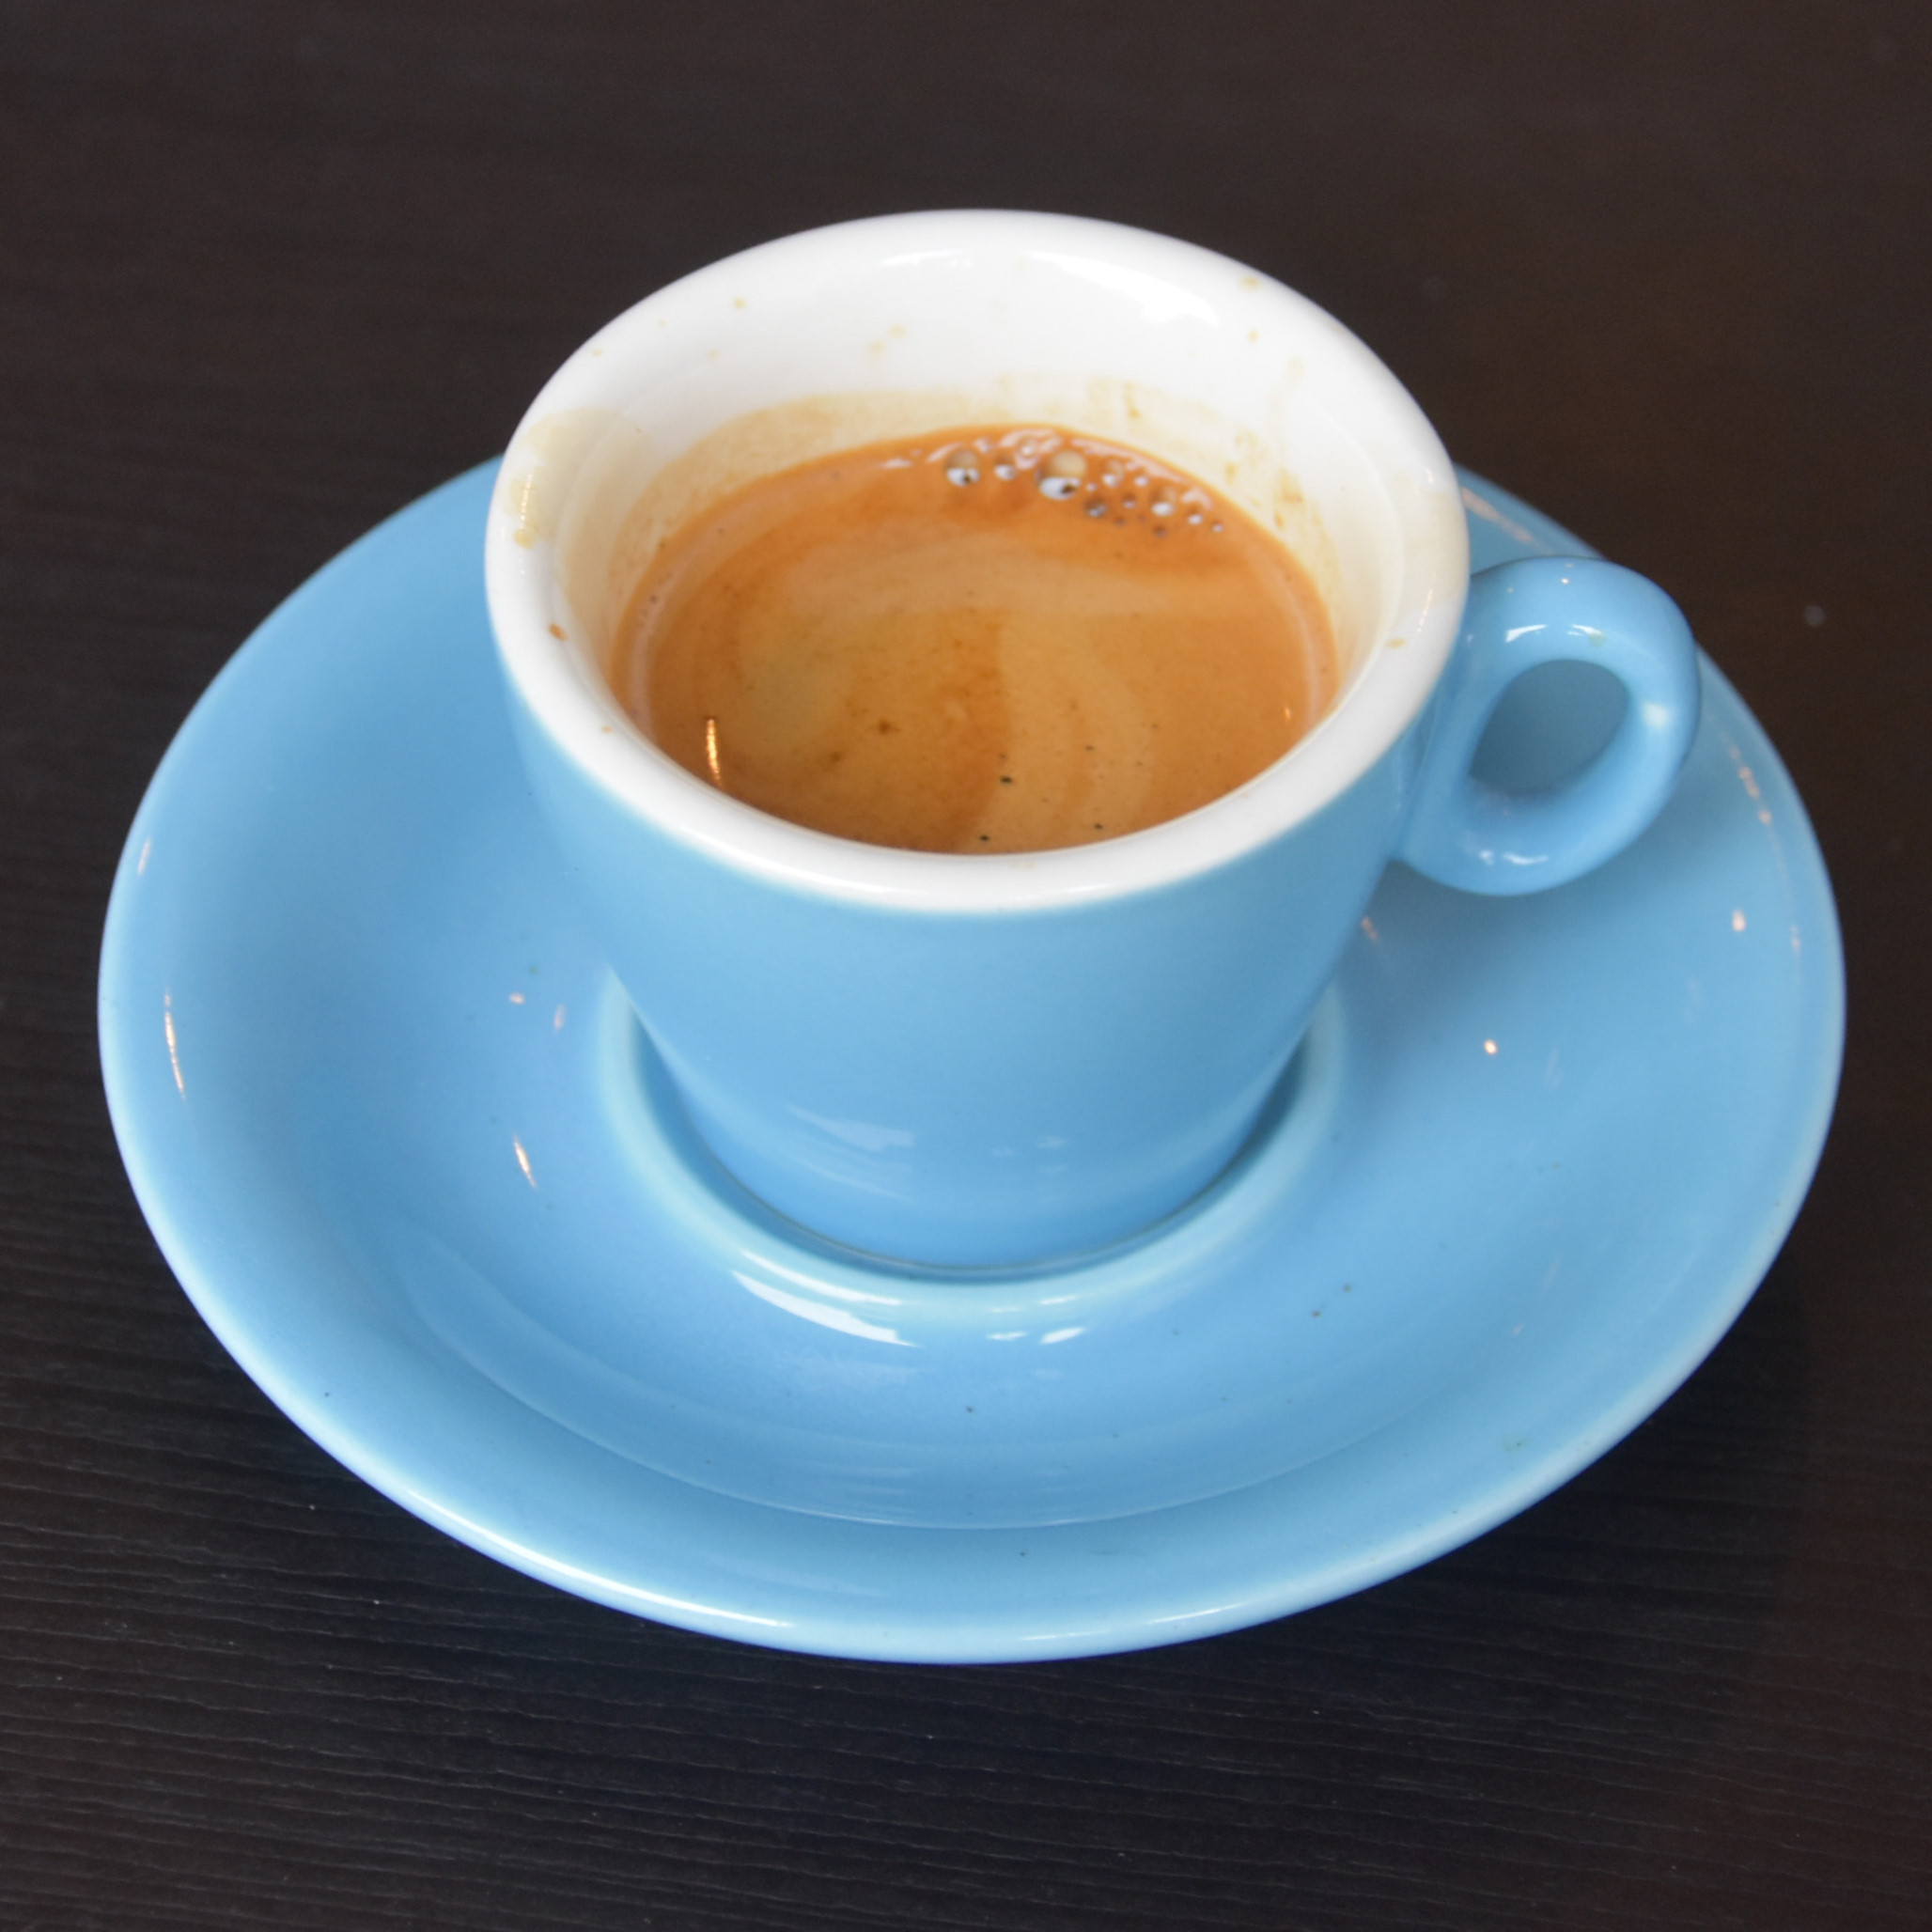 A lovely espresso in a classic blue cup, made using the Curved Brick seasonal espresso blend, served at Froth & Rind in Walthamstow.